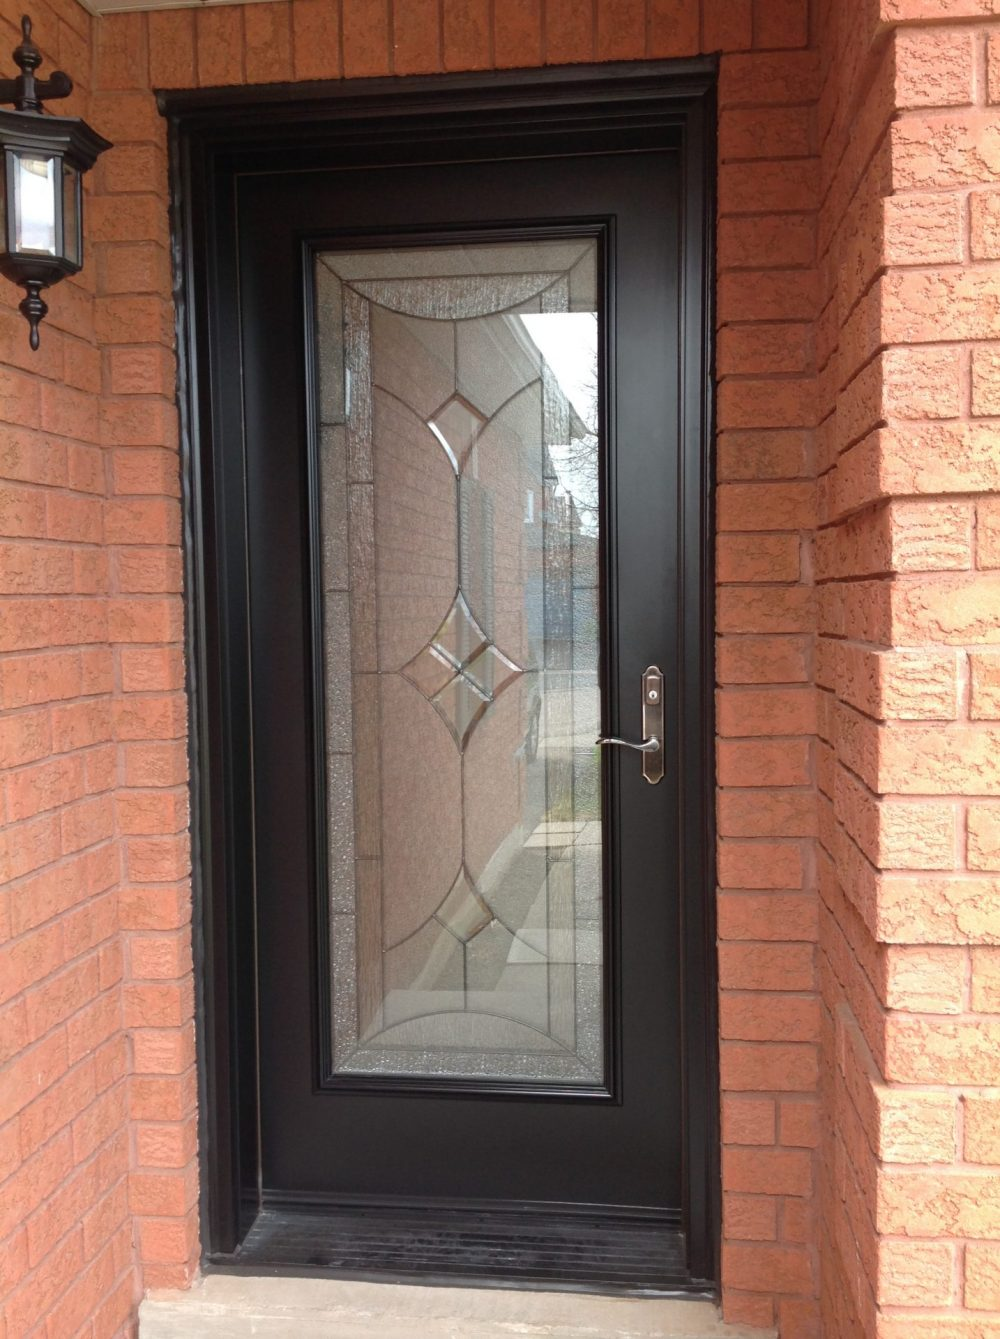 single steel door system blackwith reniore glass